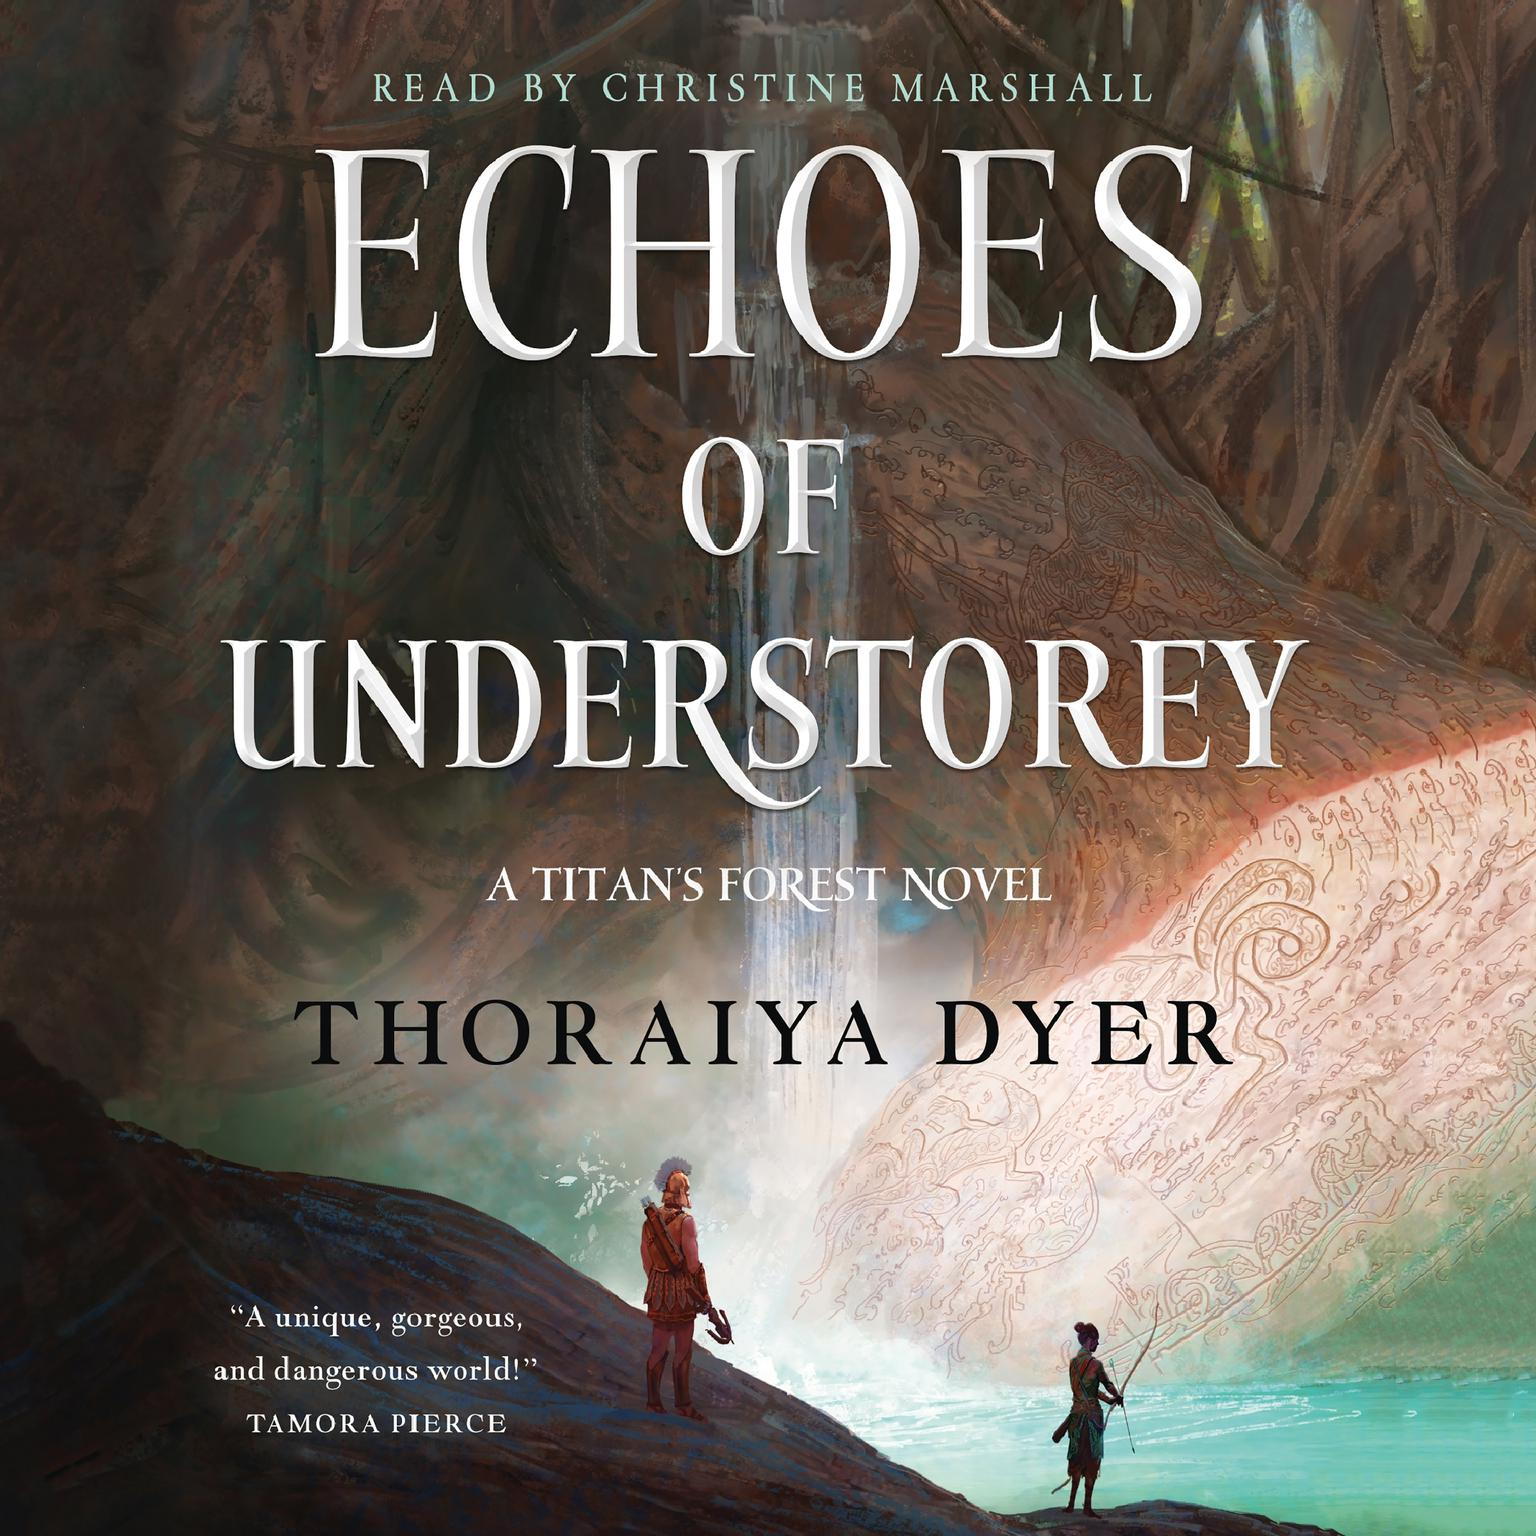 Echoes of Understorey: A Titans Forest Novel Audiobook, by Thoraiya Dyer